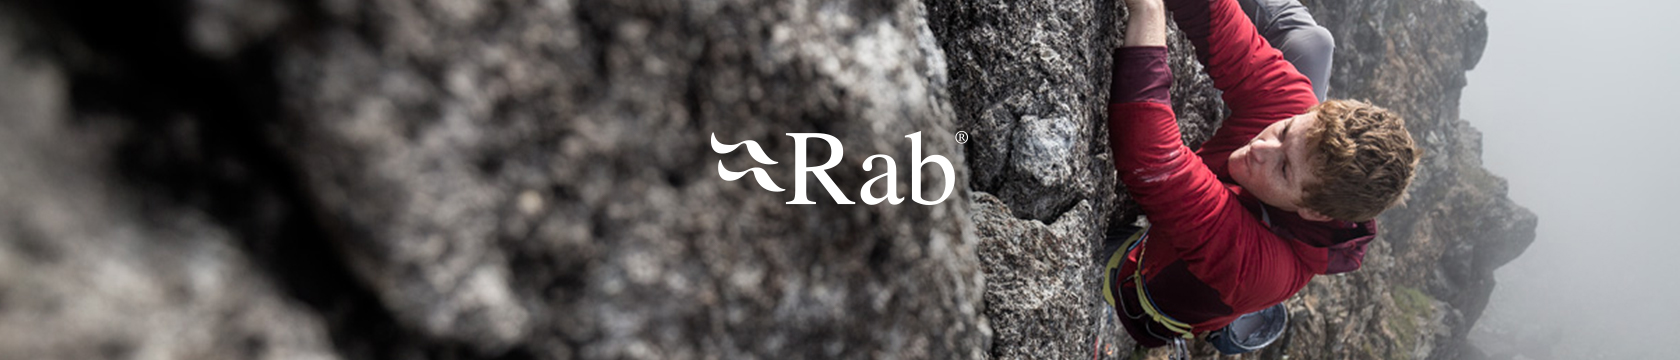 Man climbing using Rab gear.